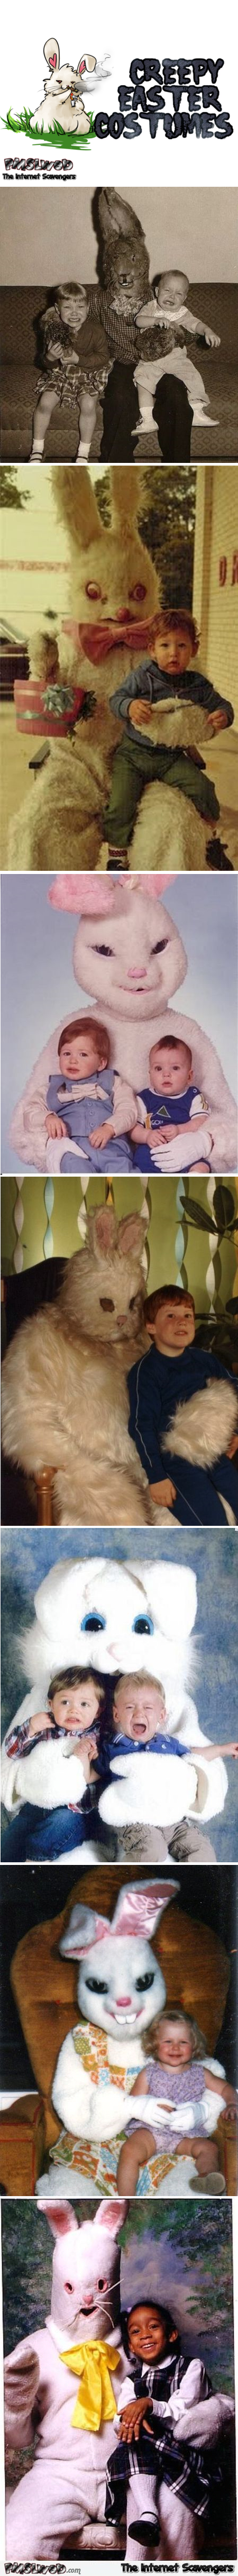 Creepy Easter costumes – Funny Easter pictures @PMSLweb.com